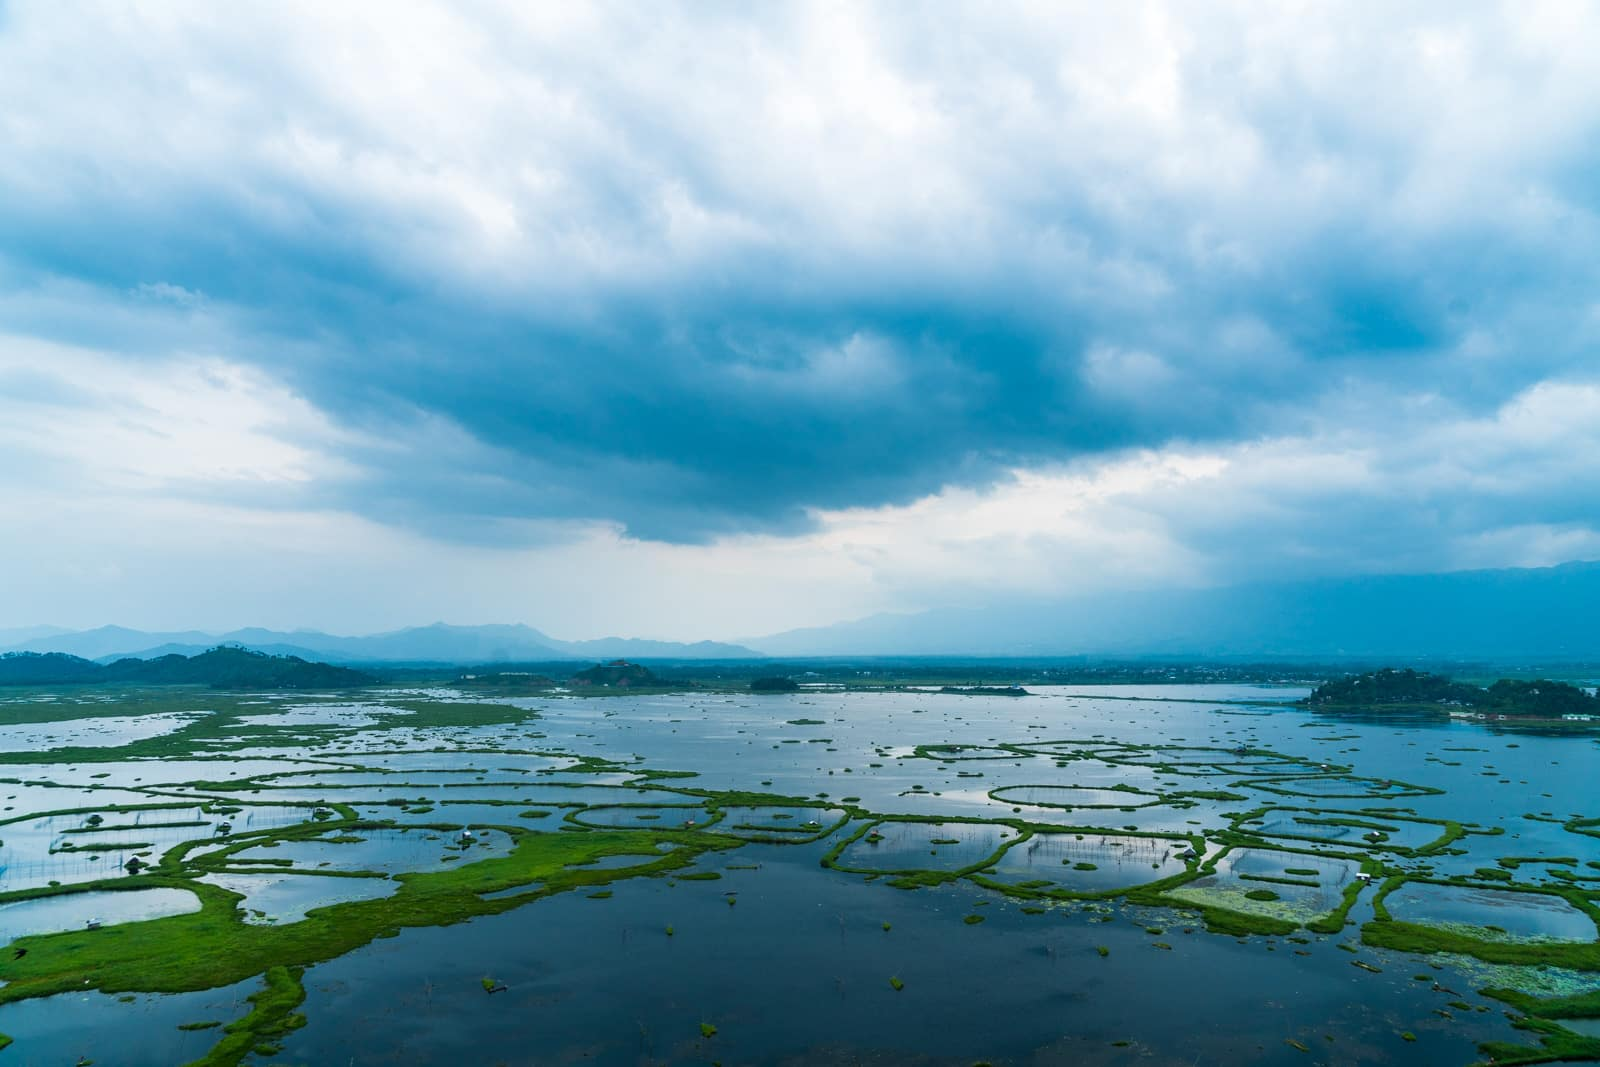 How To Get From Imphal To Loktak Lake In Manipur